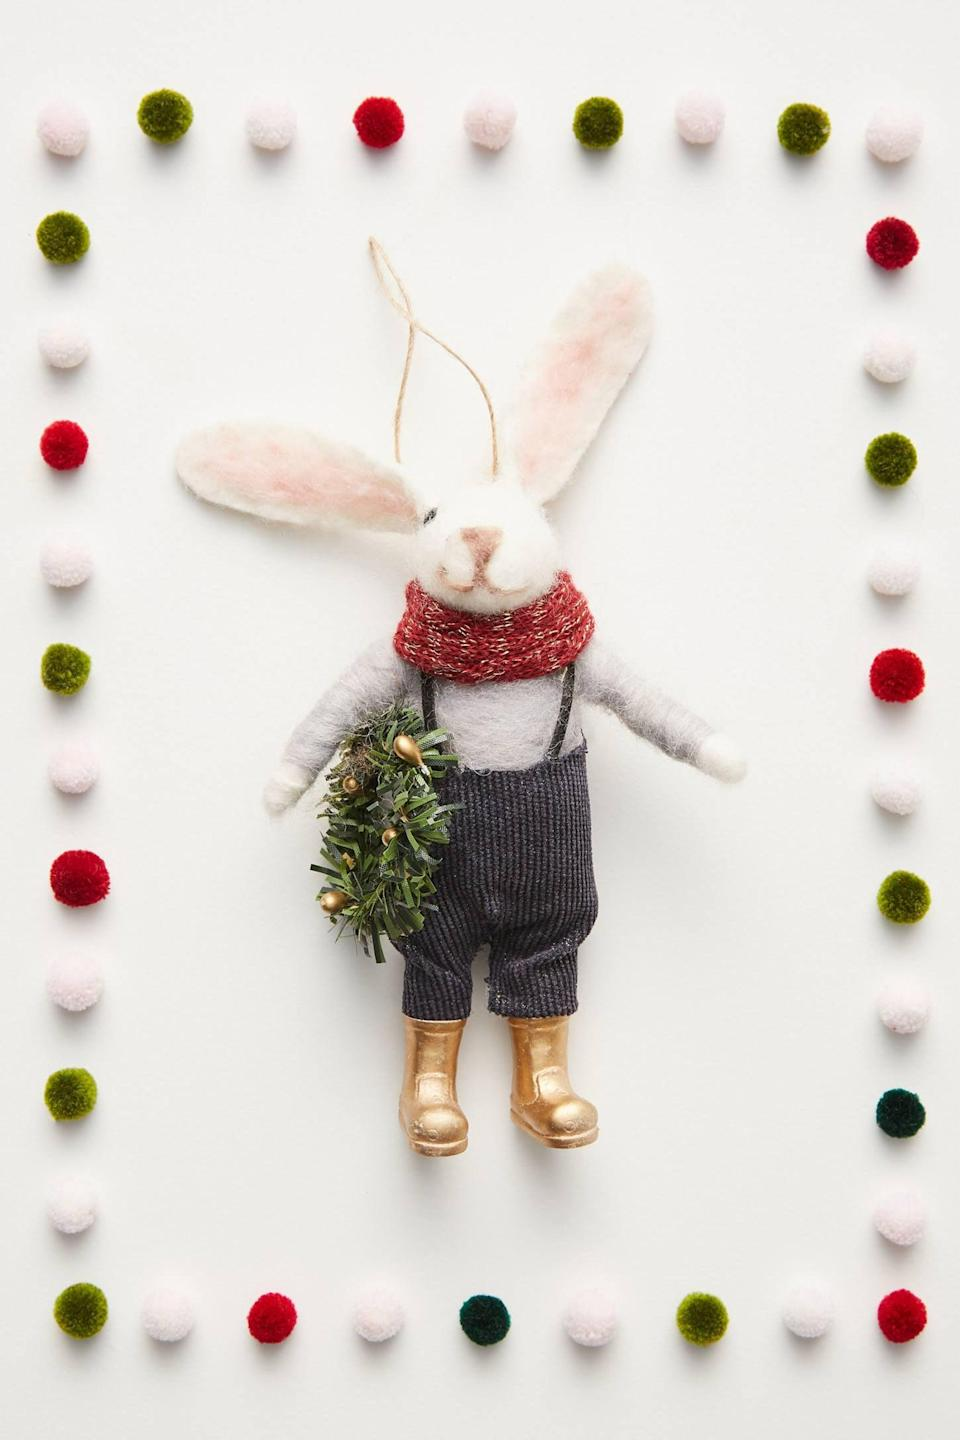 """<p>The <a href=""""https://www.popsugar.com/buy/Rabbit-Farmer-Ornament-490558?p_name=Rabbit%20Farmer%20Ornament&retailer=anthropologie.com&pid=490558&price=20&evar1=casa%3Aus&evar9=46615300&evar98=https%3A%2F%2Fwww.popsugar.com%2Fhome%2Fphoto-gallery%2F46615300%2Fimage%2F46615429%2FRabbit-Farmer-Ornament&list1=shopping%2Canthropologie%2Choliday%2Cchristmas%2Cchristmas%20decorations%2Choliday%20decor%2Chome%20shopping&prop13=mobile&pdata=1"""" rel=""""nofollow noopener"""" class=""""link rapid-noclick-resp"""" target=""""_blank"""" data-ylk=""""slk:Rabbit Farmer Ornament"""">Rabbit Farmer Ornament</a> ($20) is wearing gold boots that are so stylish. </p>"""